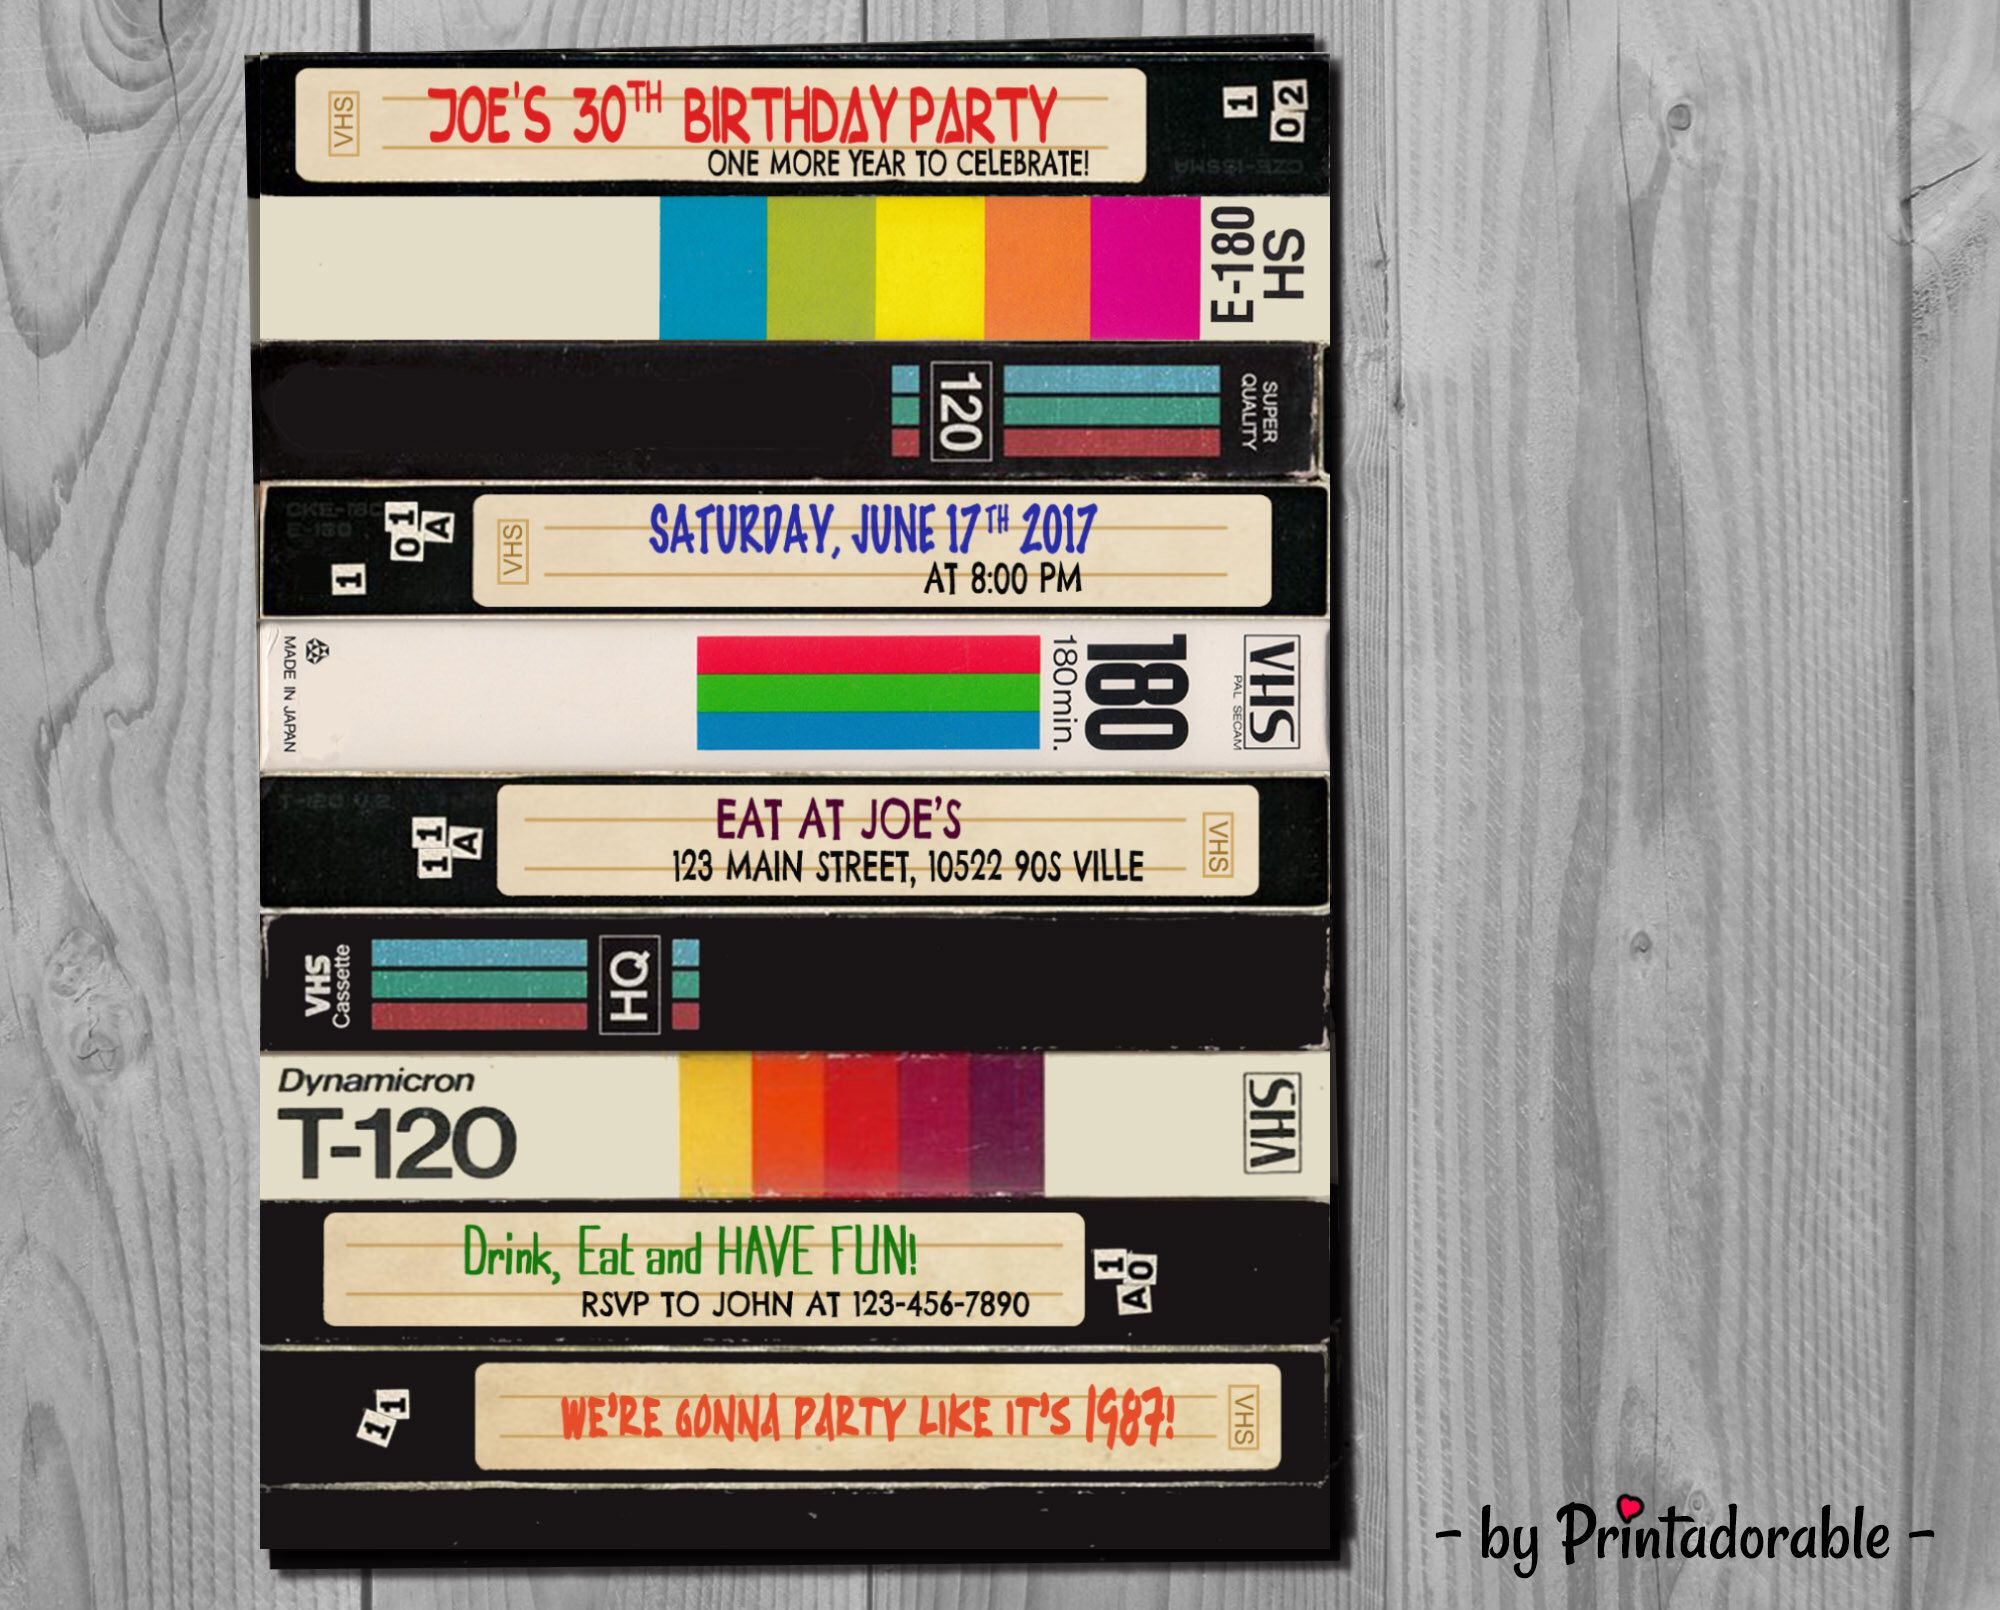 Retro VCR Greeting Card 80s 90s Birthday Card Vintage video cassette Card